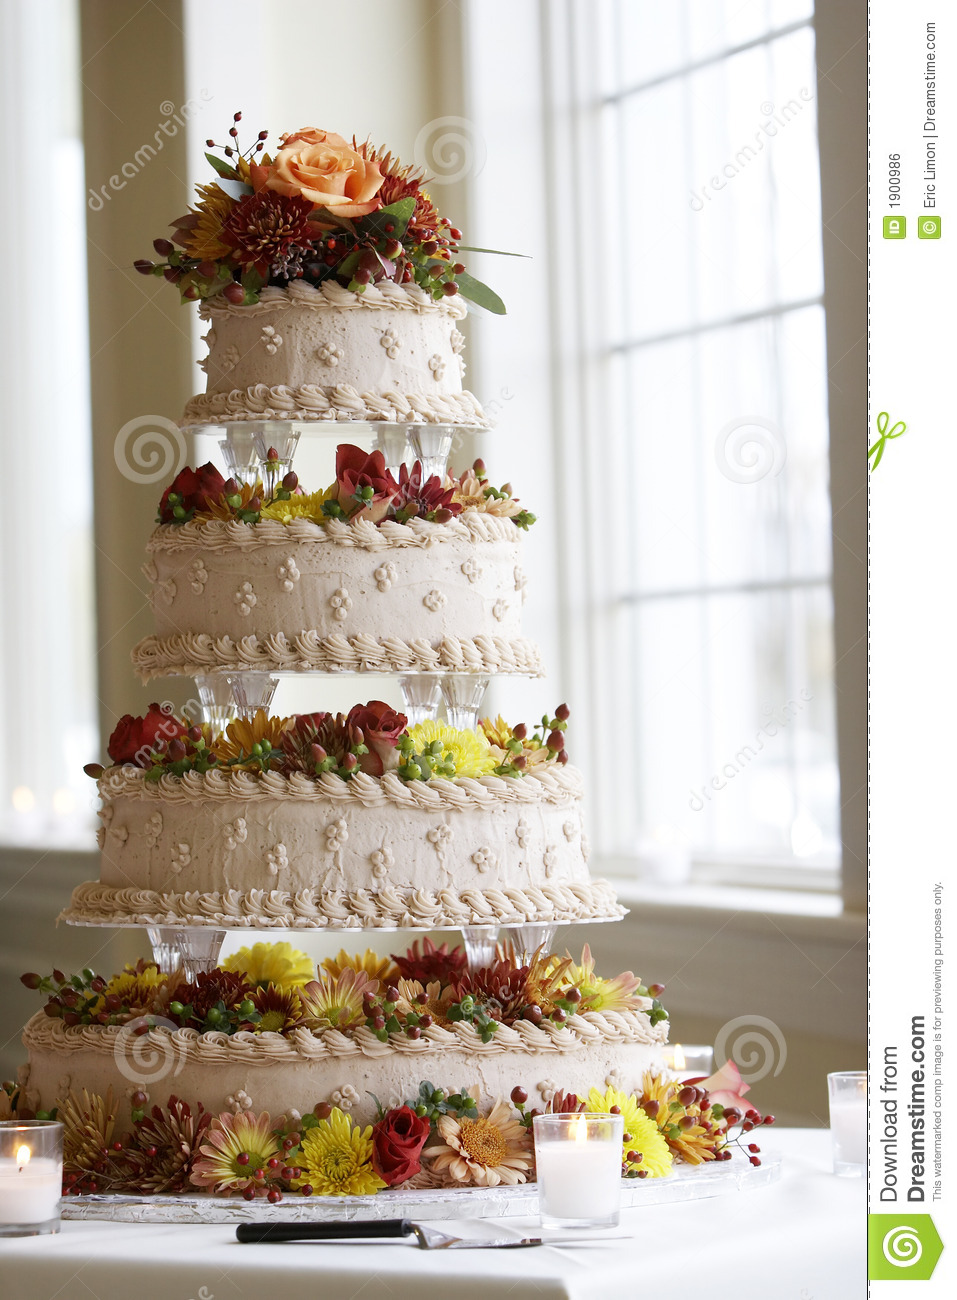 Fancy Wedding Cake Royalty Free Stock Image Image 1900986